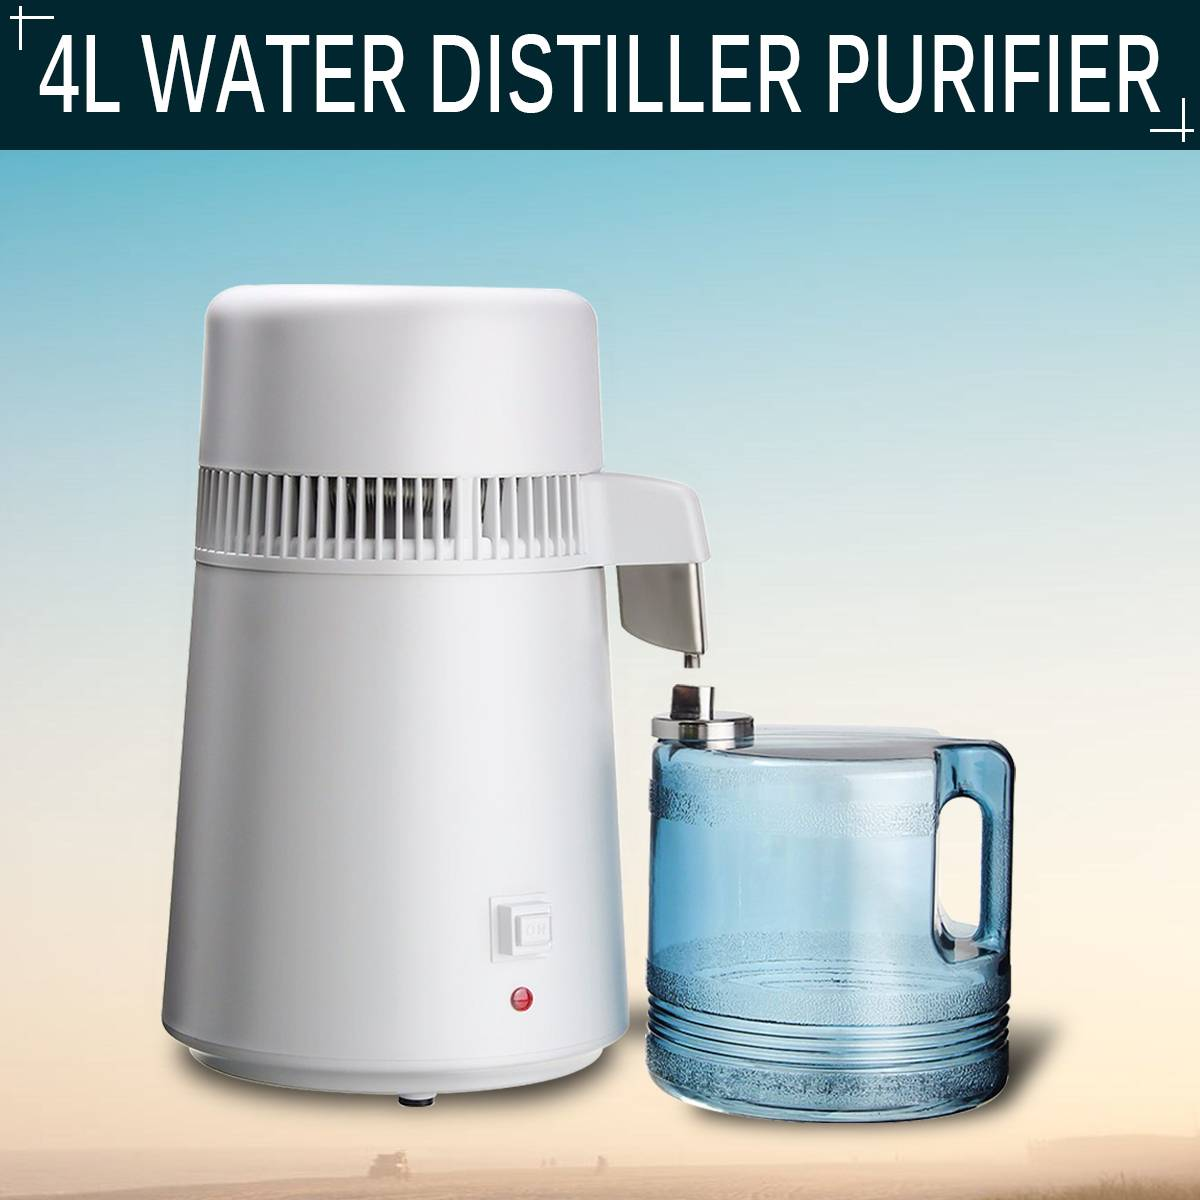 4L Household Pure Water Distiller Distilled Water Machine Distillation Purifier Stainless Steel Water Filter Machine Health dmwd household water distilled machine pure water distiller filter electric distillation purifier stainless steel 110v 220v 4l